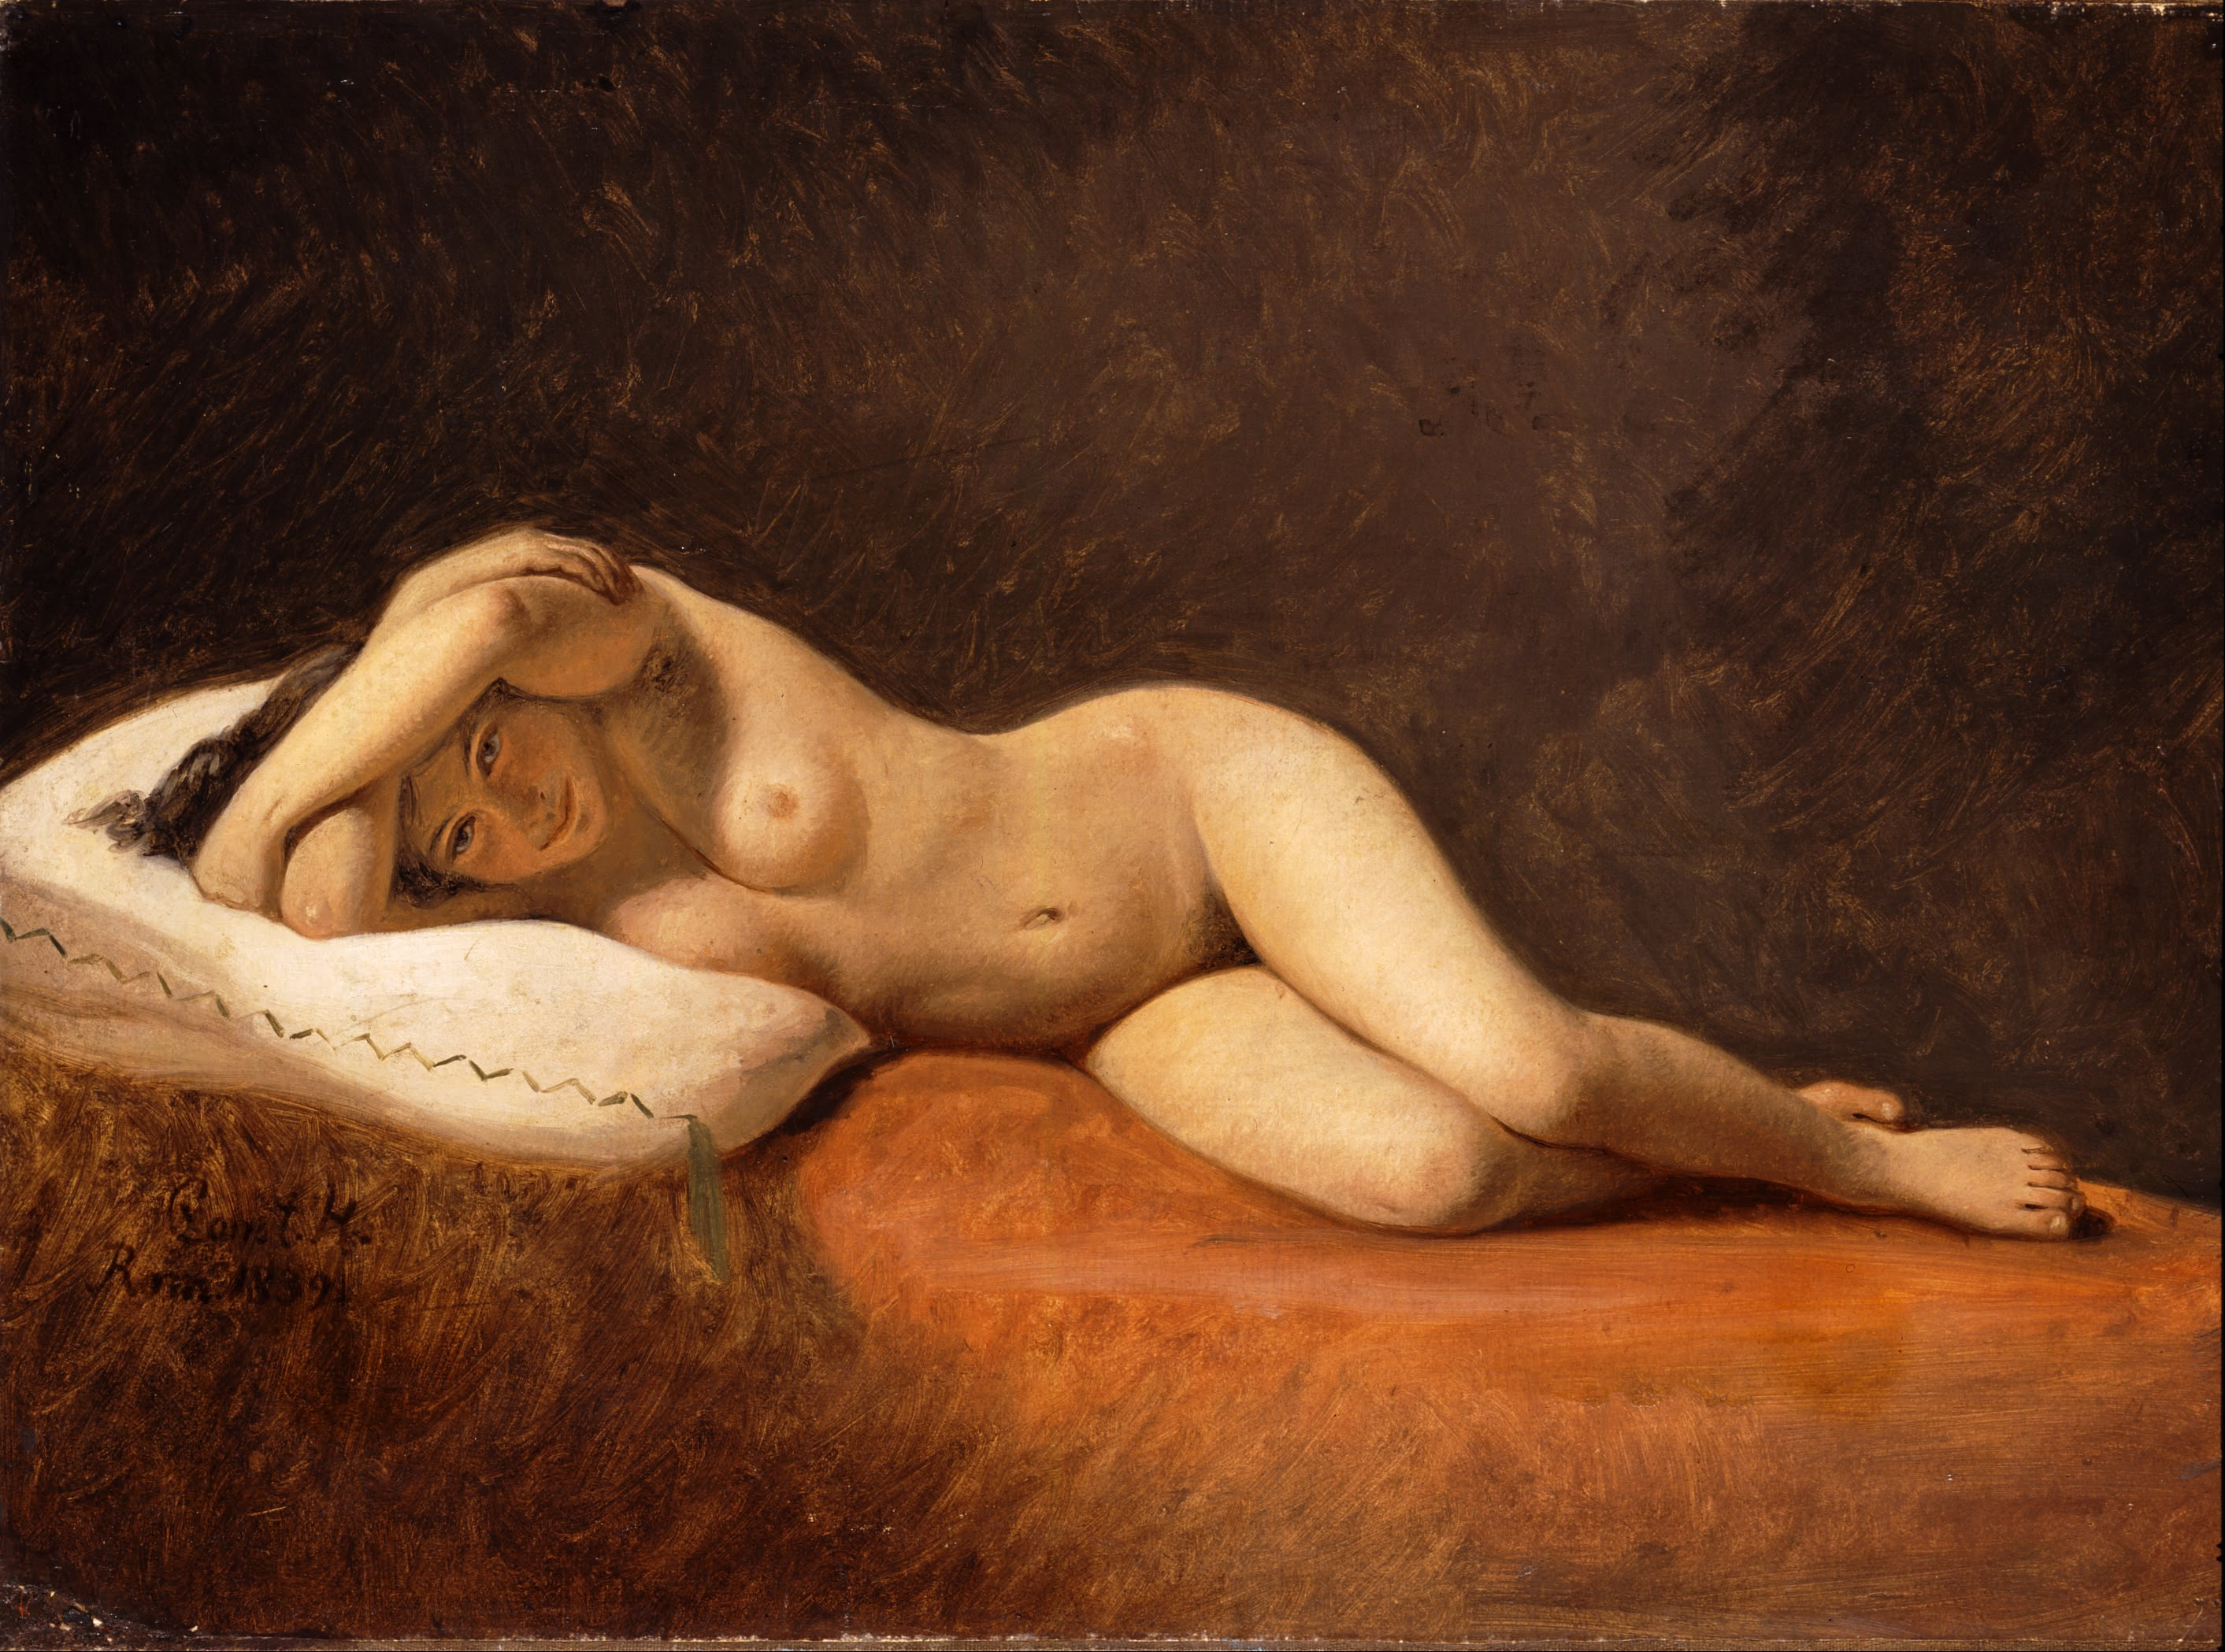 Constantin_Hansen_-_Resting_Model_-_Google_Art_Project